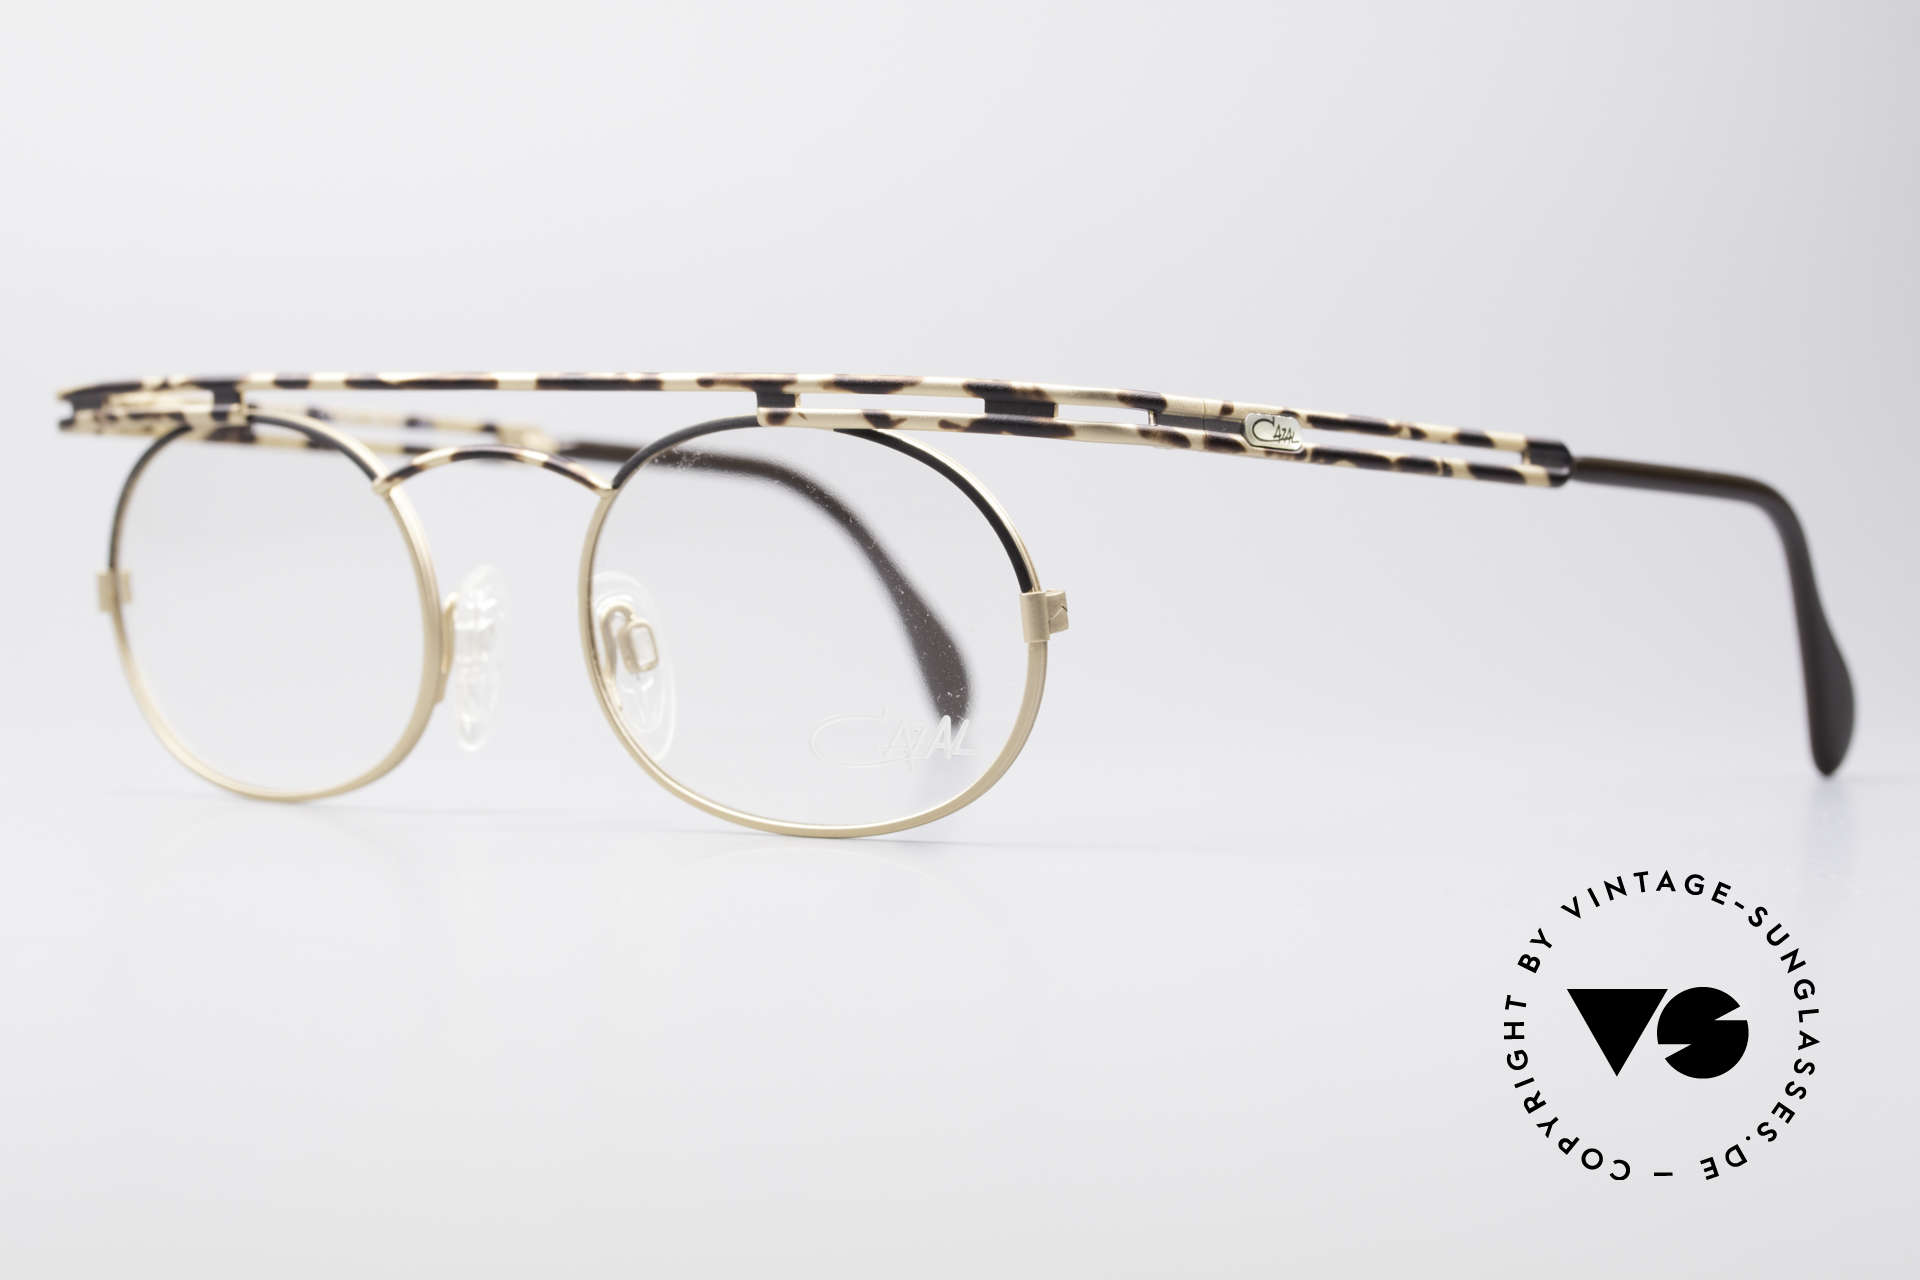 Cazal 761 NO Retro Glasses Vintage Frame, top-notch craftsmanship (frame 'made in Germany'), Made for Men and Women